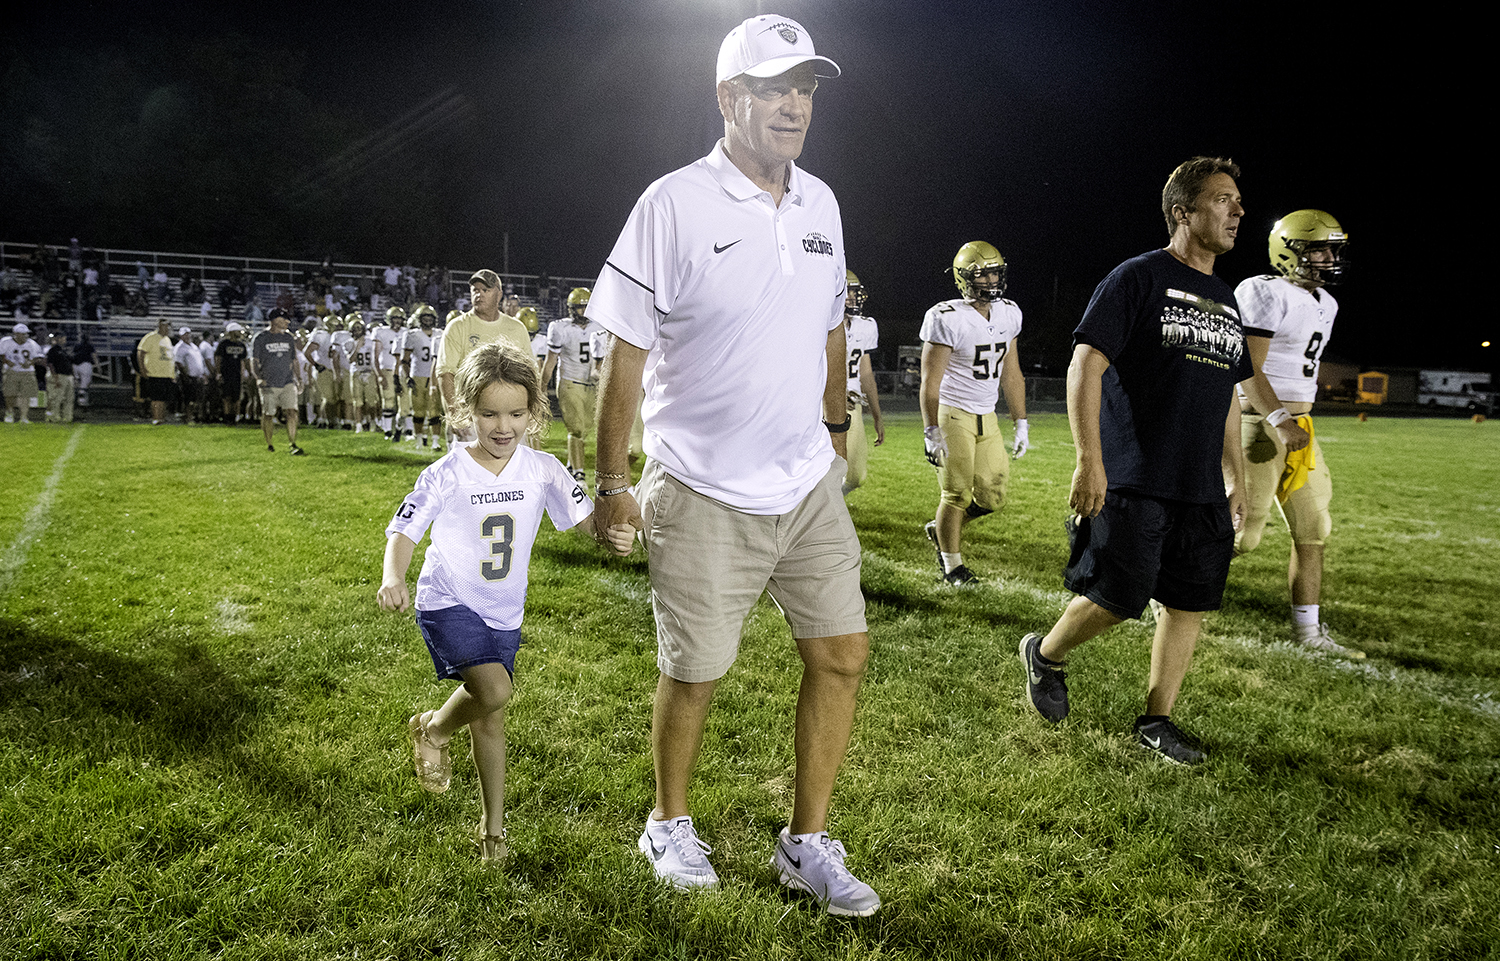 Escorted by his granddaughter Julia, Sacred Heart-Griffin head coach Ken Leonard crosses the field to shake hands with Southeast head coach Matt Lauber and the Spartans after the Cyclones won at Southeast High School Friday, Sept. 14, 2018. [Ted Schurter/The State Journal-Register]